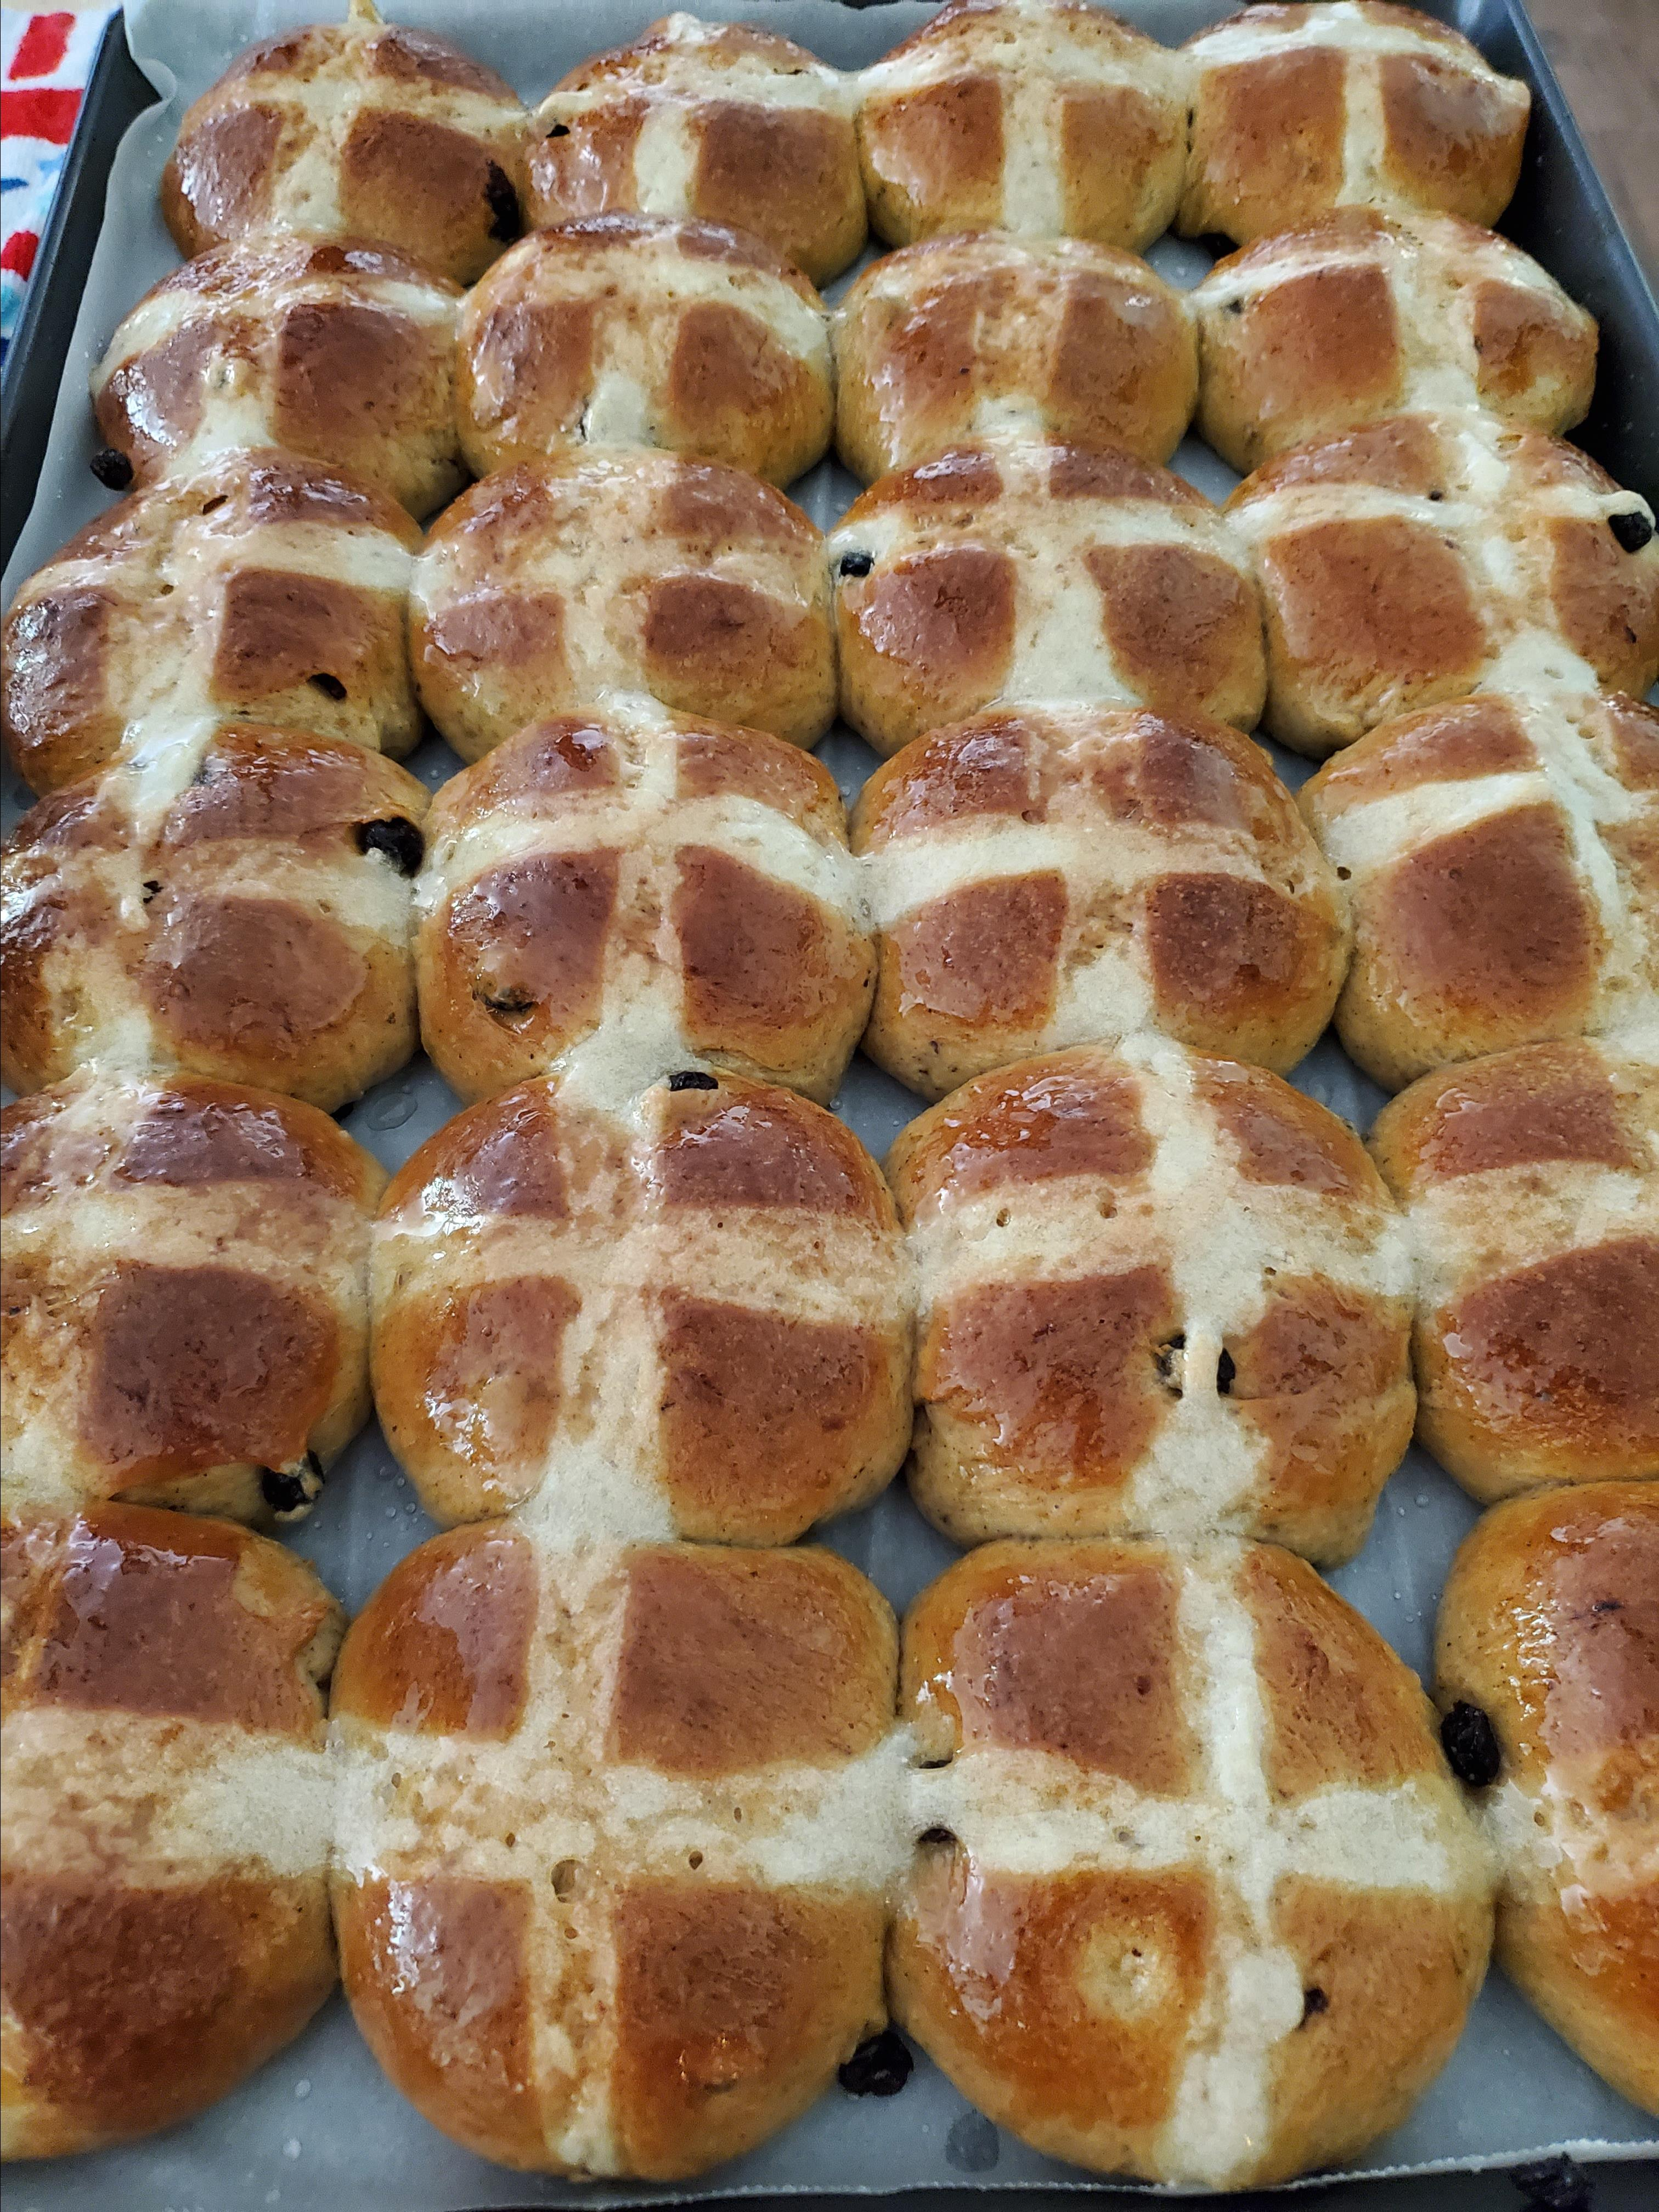 Chef John's Hot Cross Buns